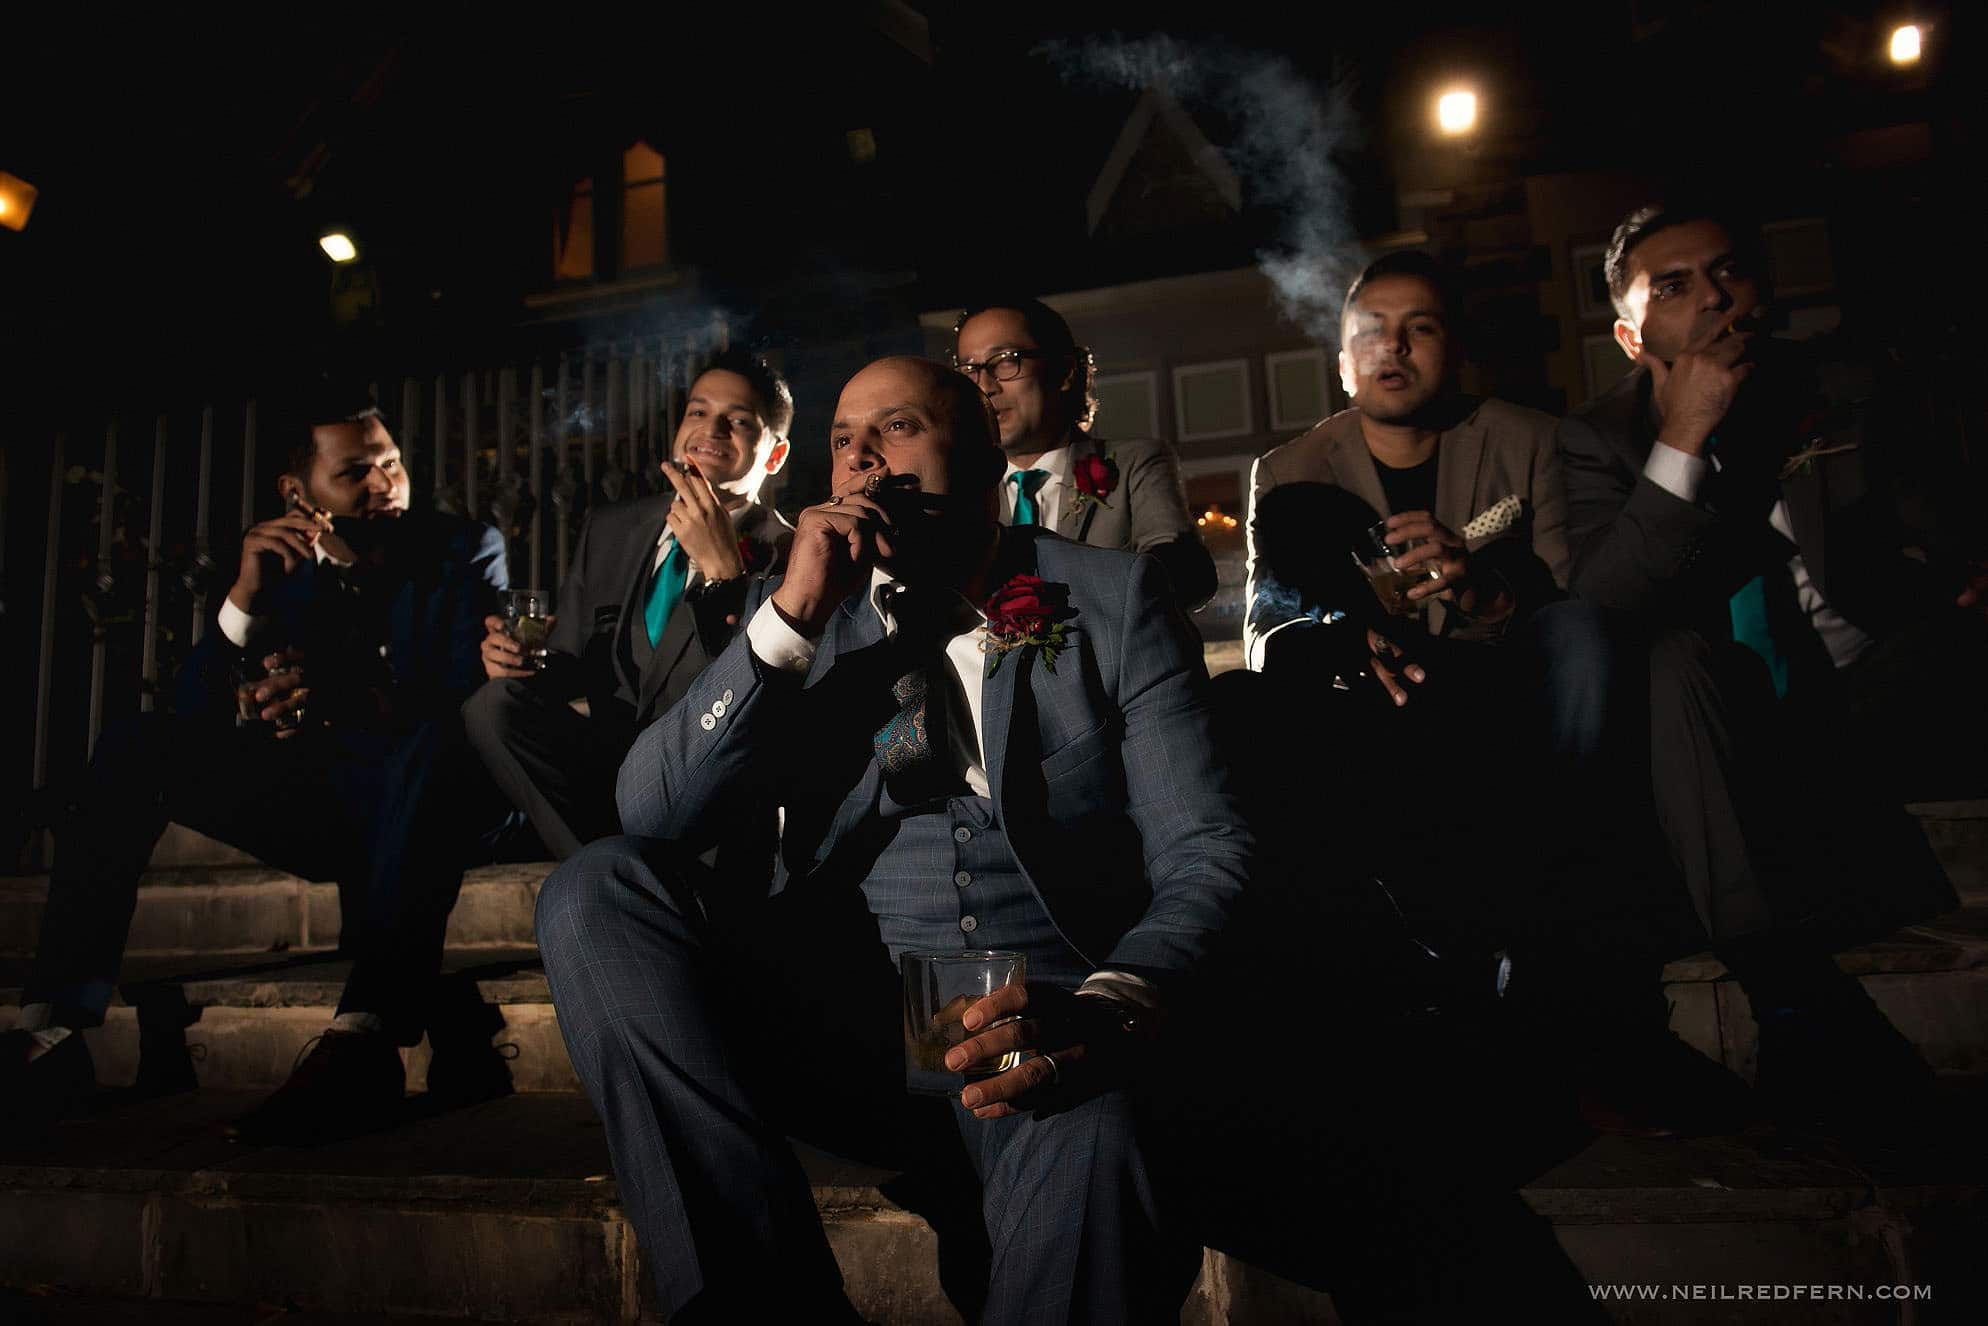 cool shot of groomsmen smoking cigars